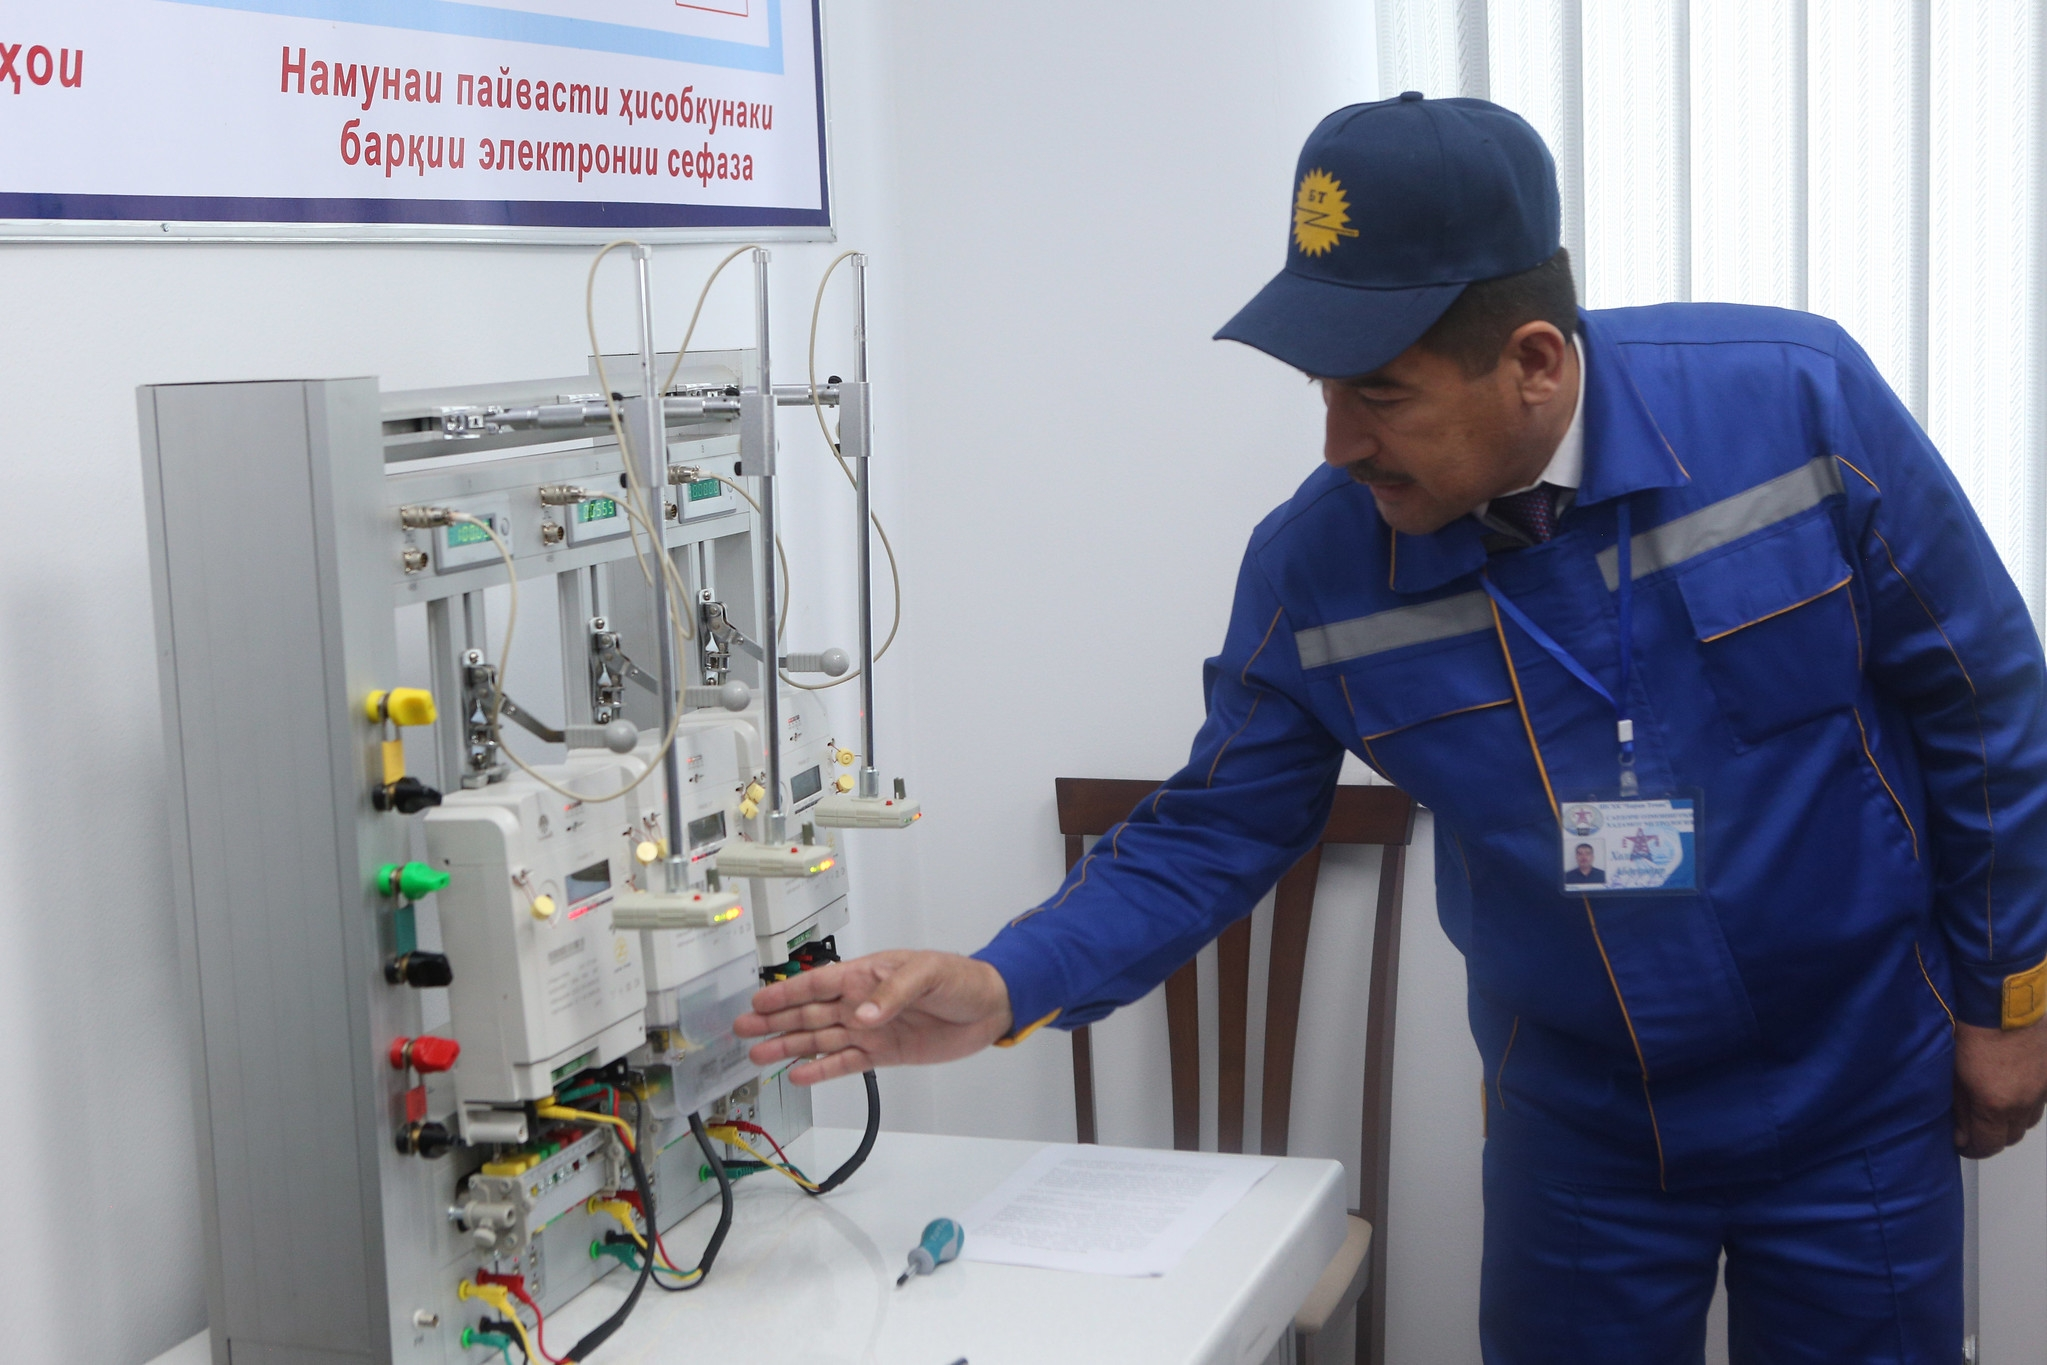 Powerless: Electricity rationing has returned after a few years of relative plenty. (Photo: Presidential administration press office)